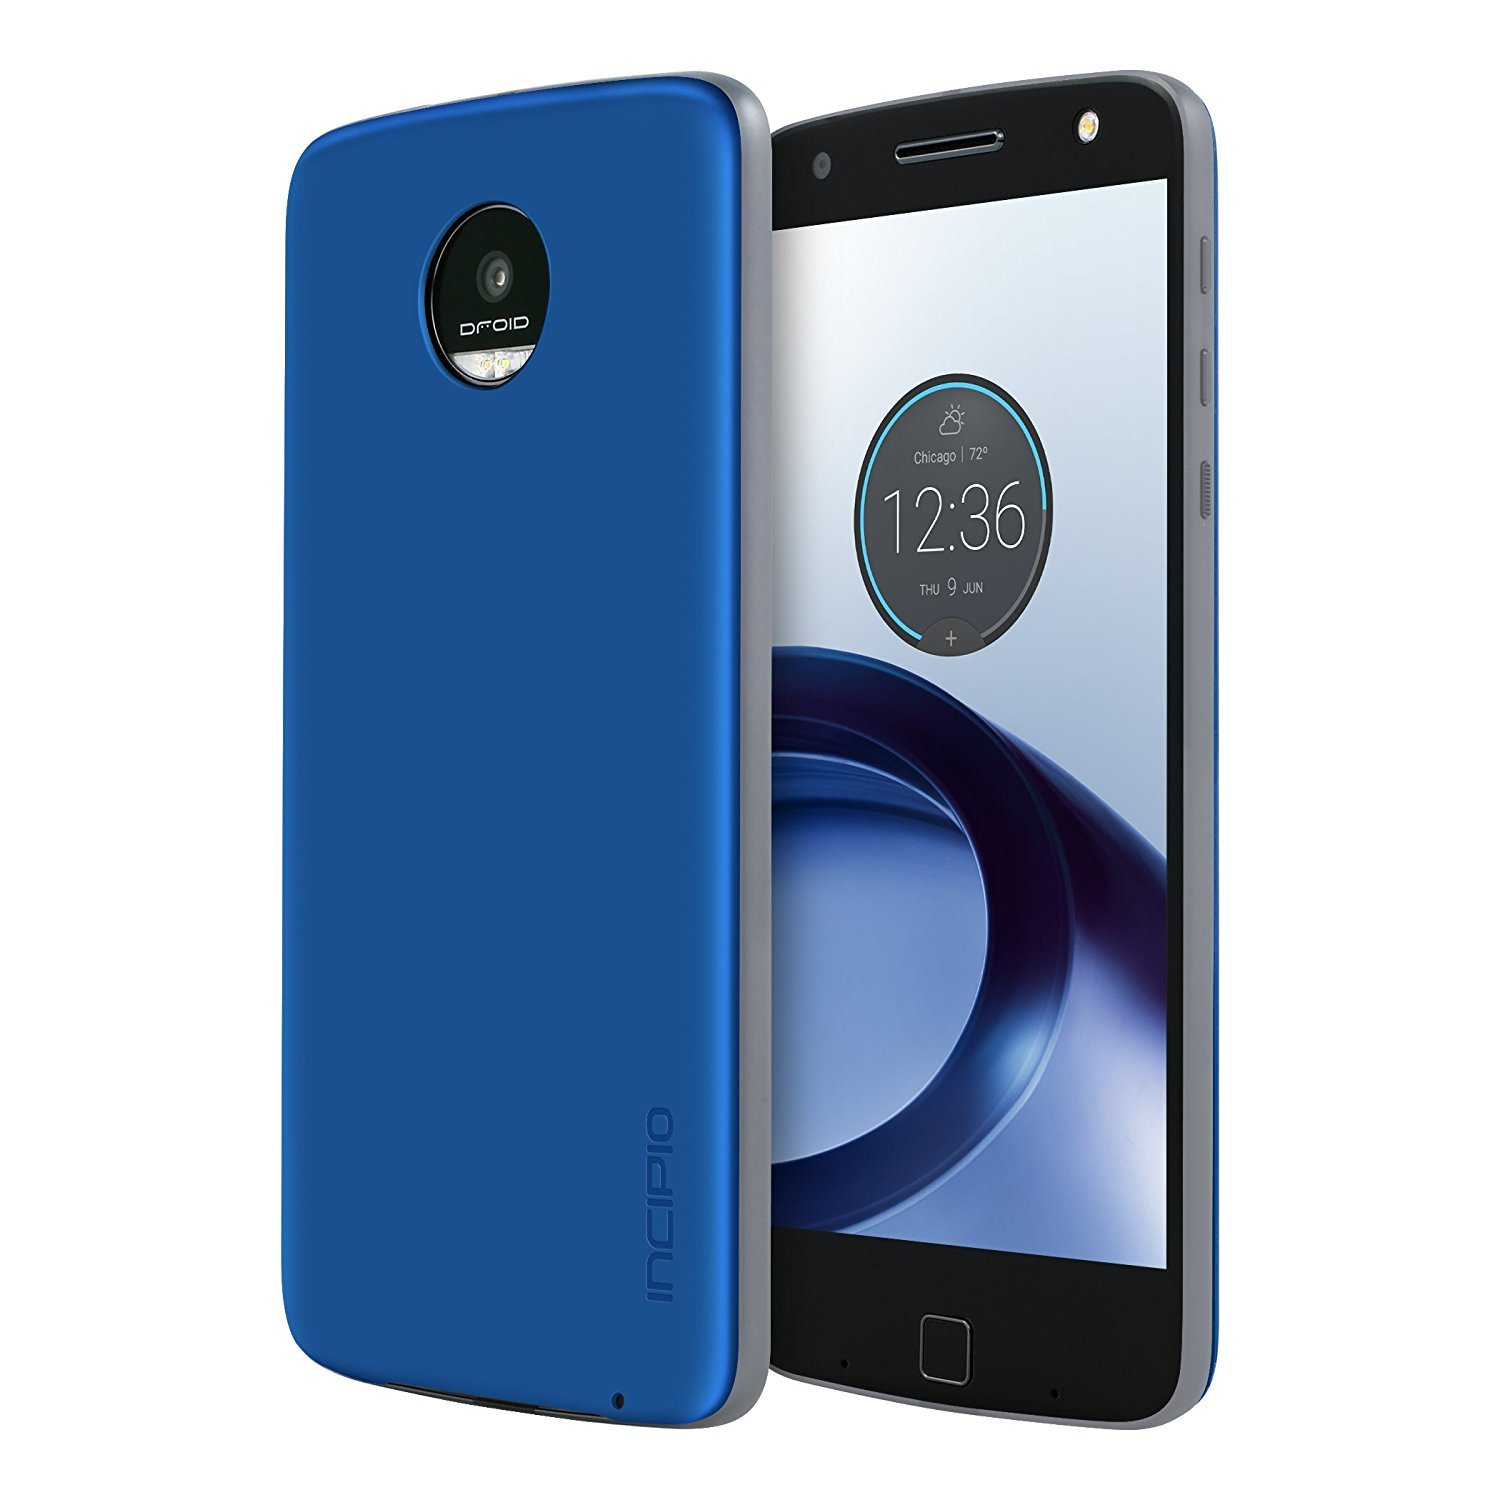 Moto Z Force Droid Case [Aluminum] Incipio Back Plate for Moto Z Force Droid Smartphone - Iridescent Nautical Blue